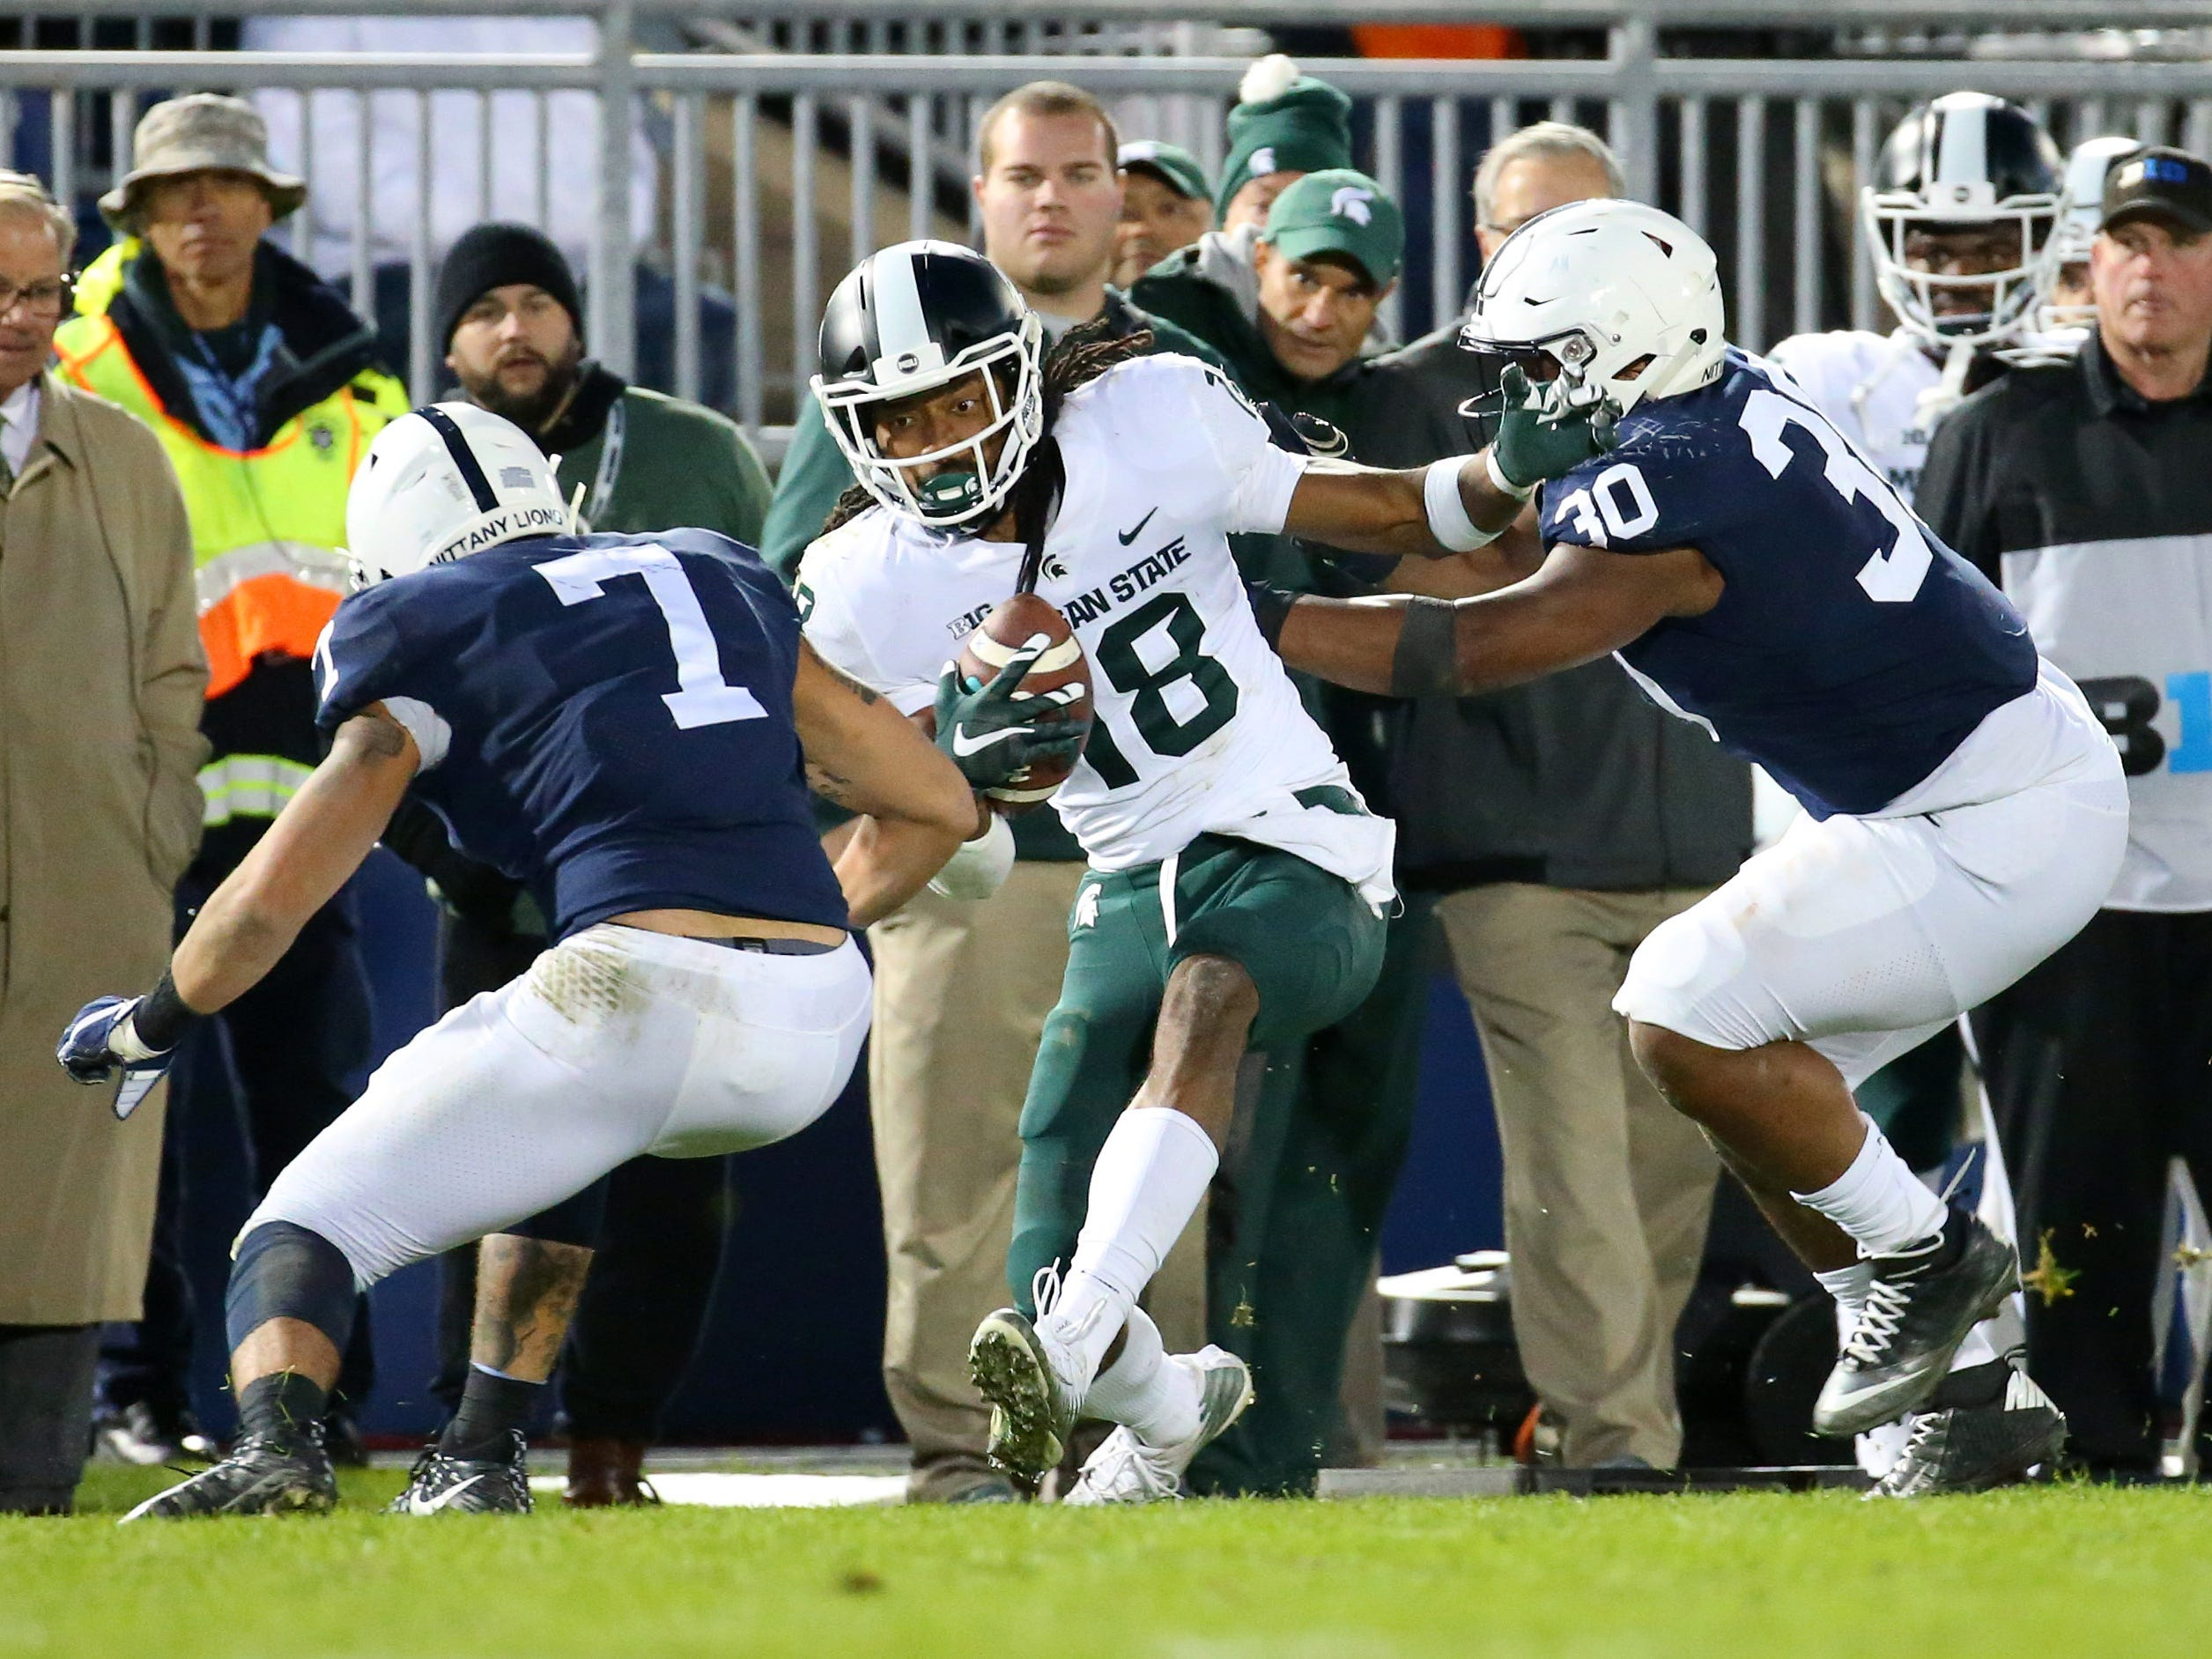 Michigan State Spartans wide receiver Felton Davis III (18) runs with the ball after a catch against Penn State Nittany Lions linebacker Koa Farmer (7) and defensive tackle Kevin Givens (30) during the fourth quarter at Beaver Stadium.